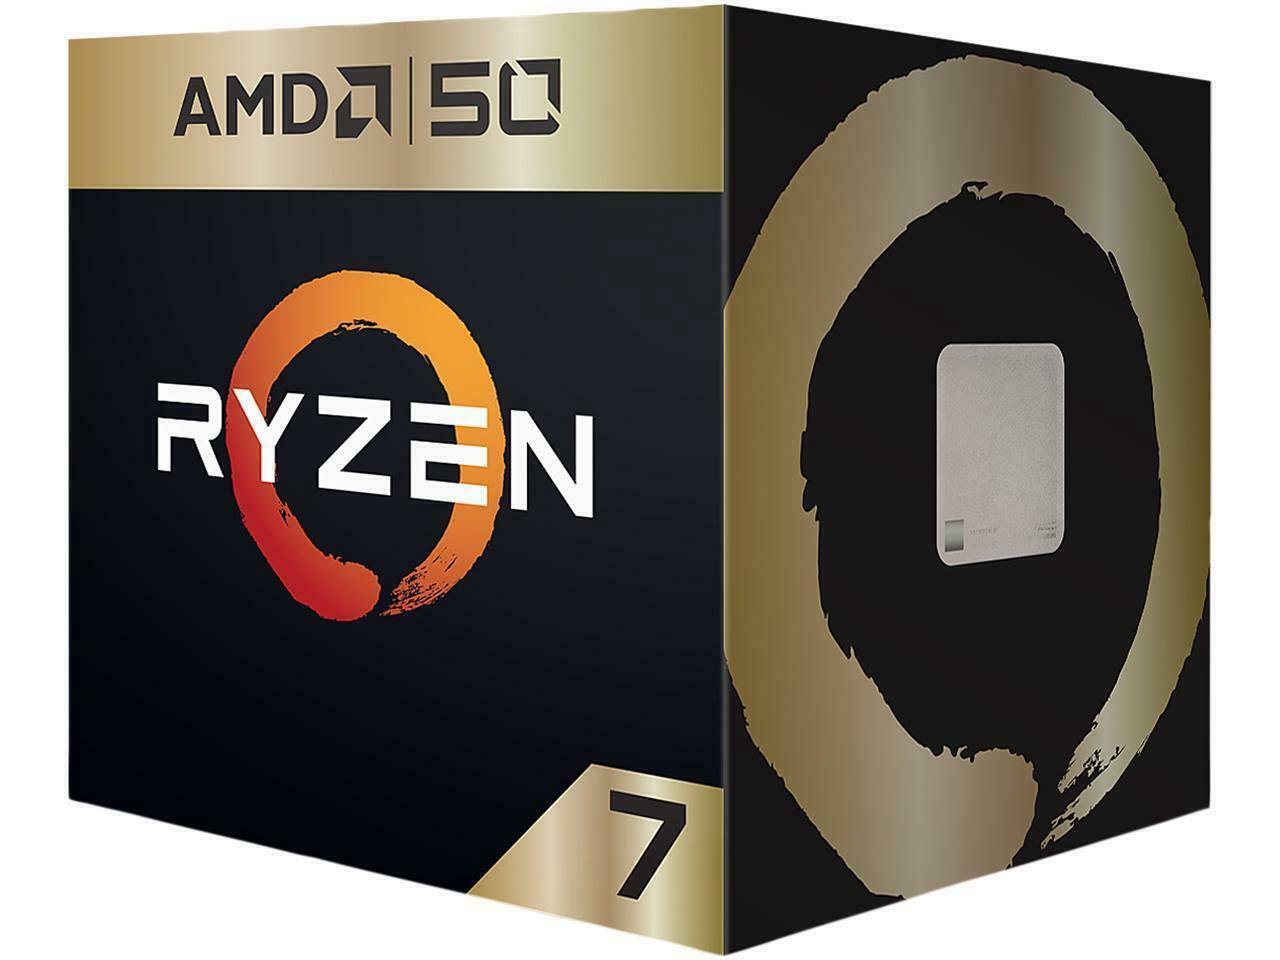 AMD Ryzen 7 2700X Gold Limited Edition,8 Core, 16 Thread, 4.3GHz - AM4 CPU